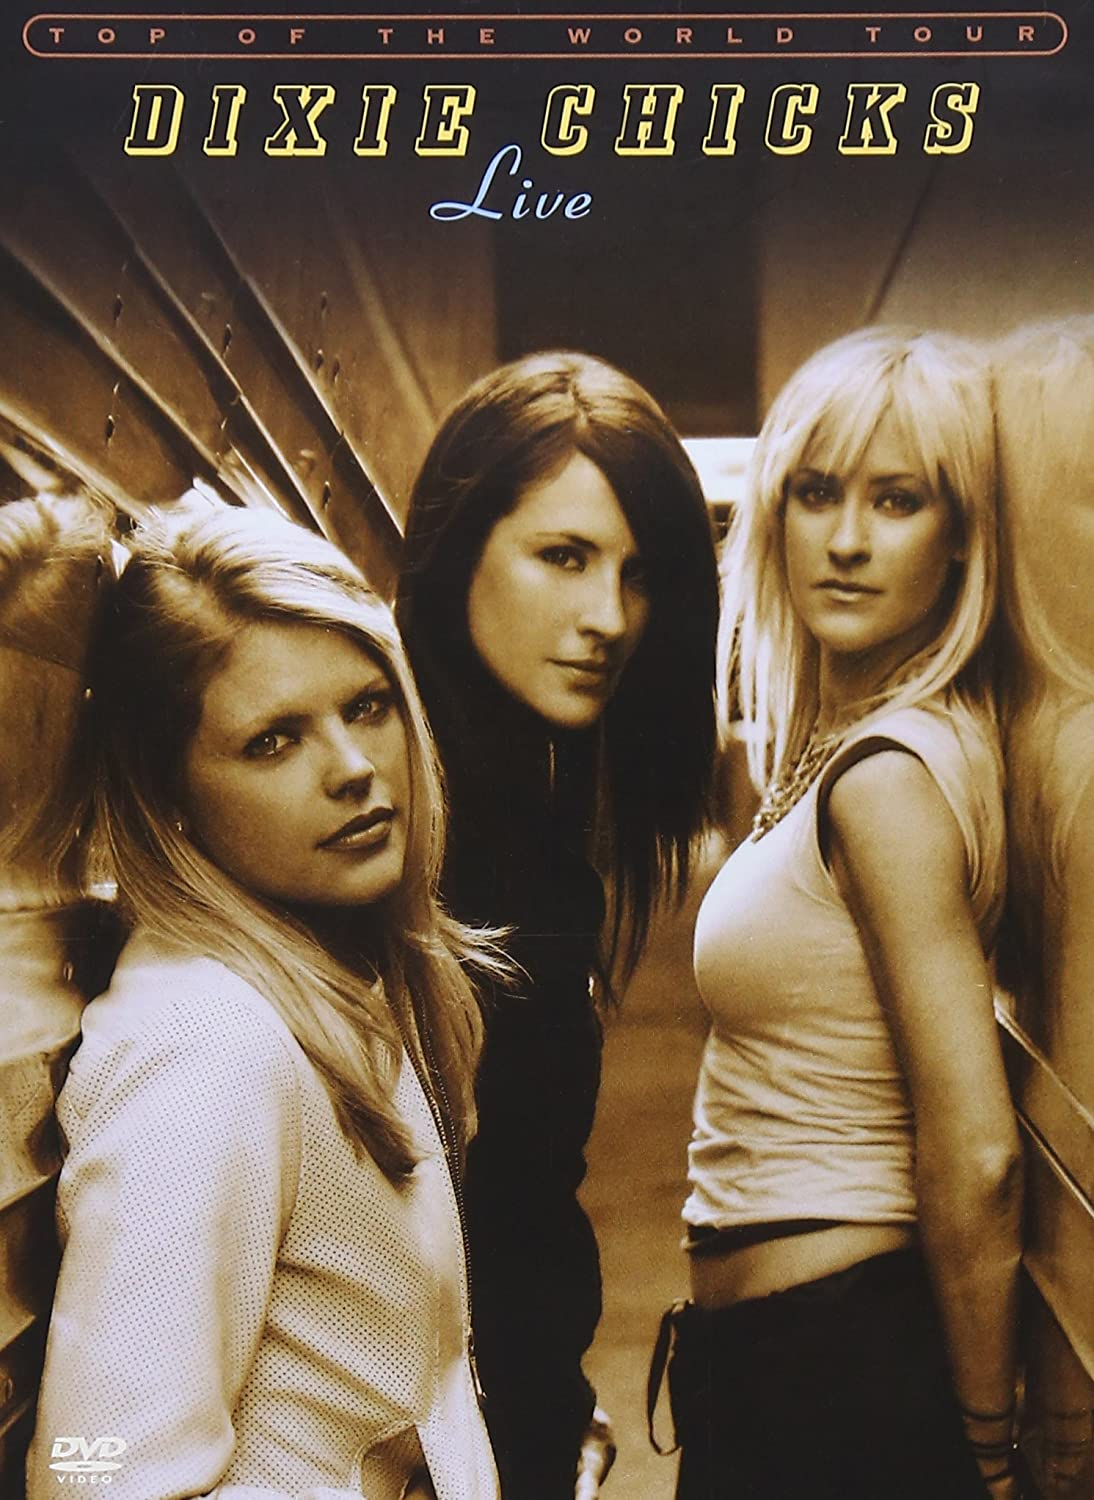 Dixie Chicks - Top of the World Tour - Live - DVD /plast/